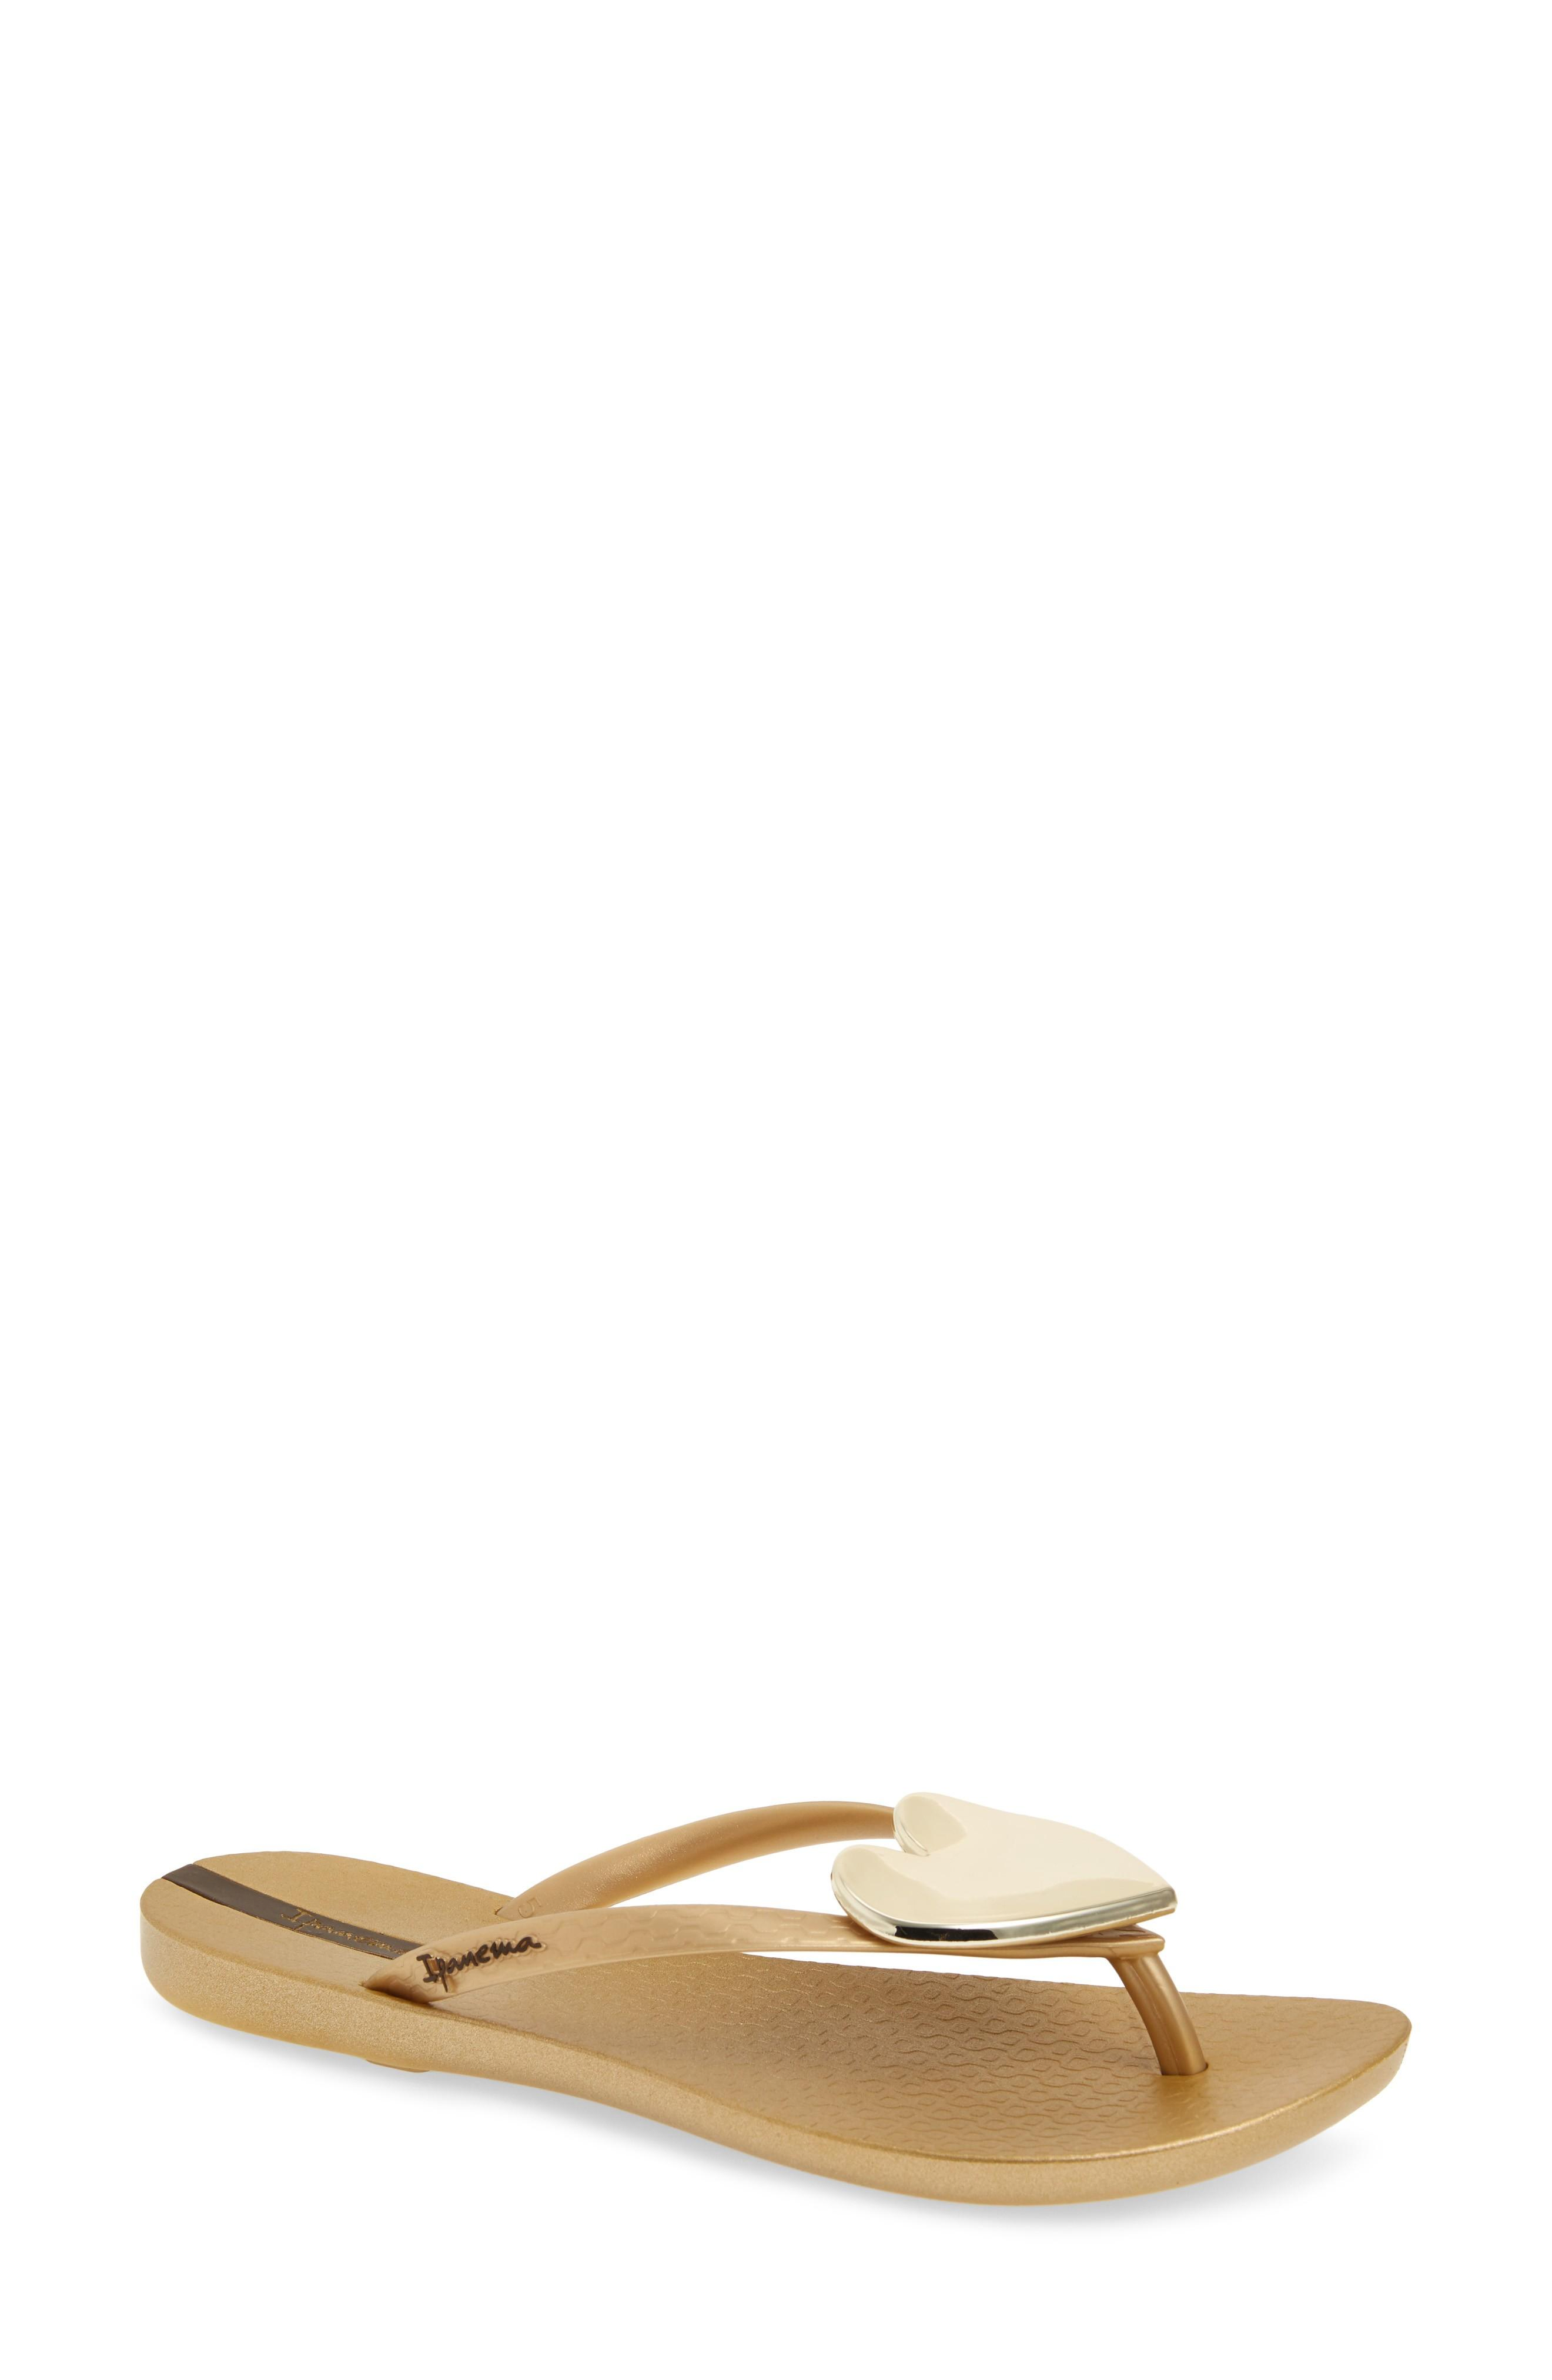 4e9cdc2ce25 Ipanema Wave Heart Flip Flop In Gold  Gold